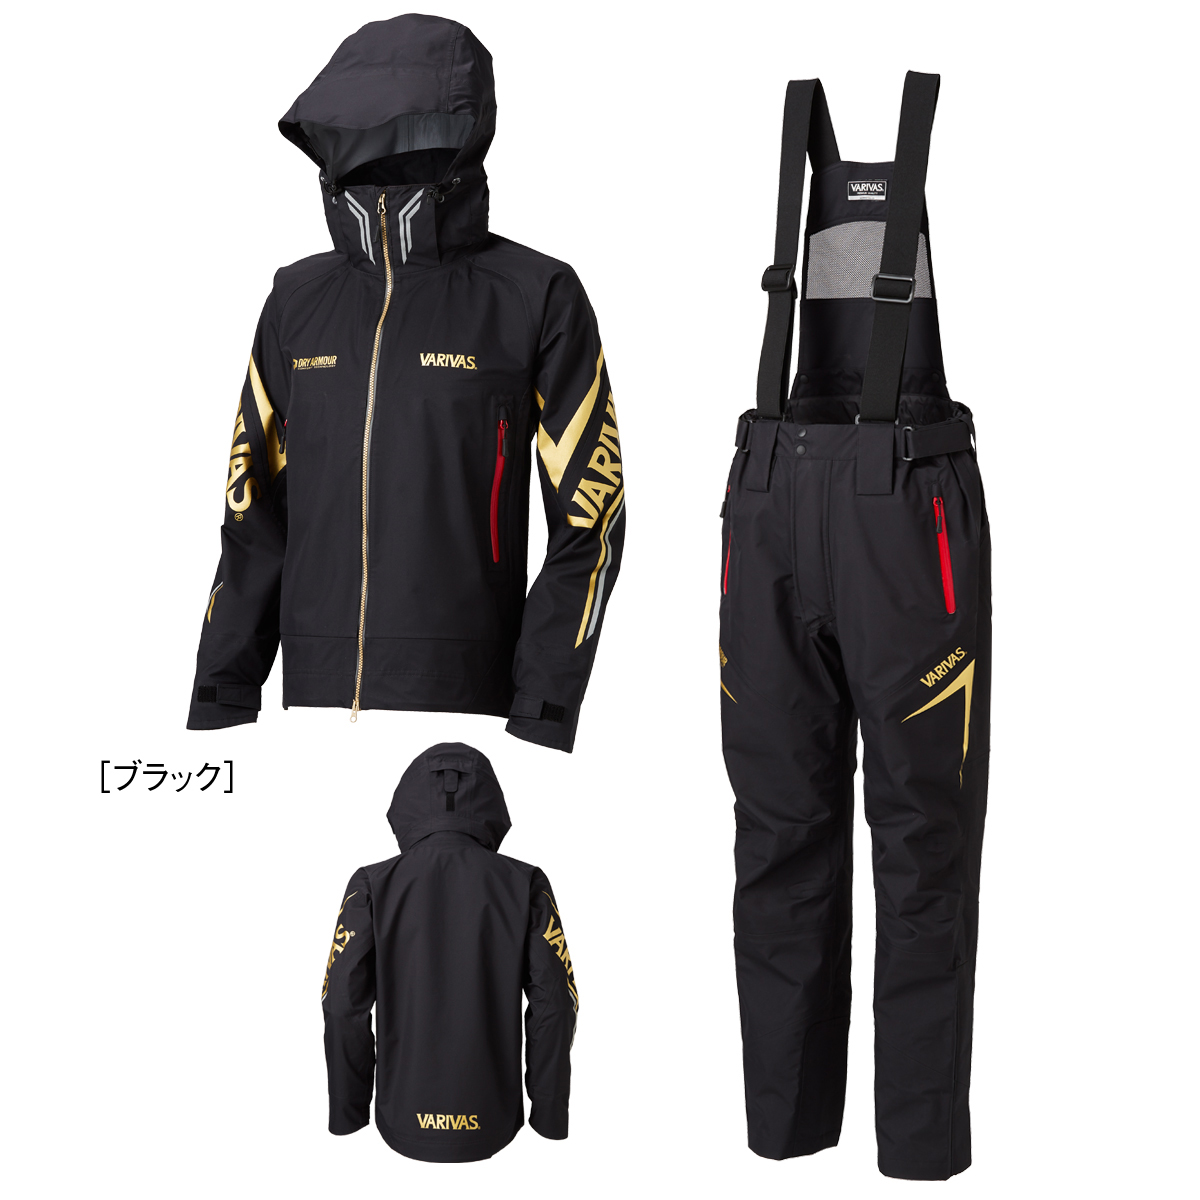 Dry Armor Rain Suits<br> [VARS-11]